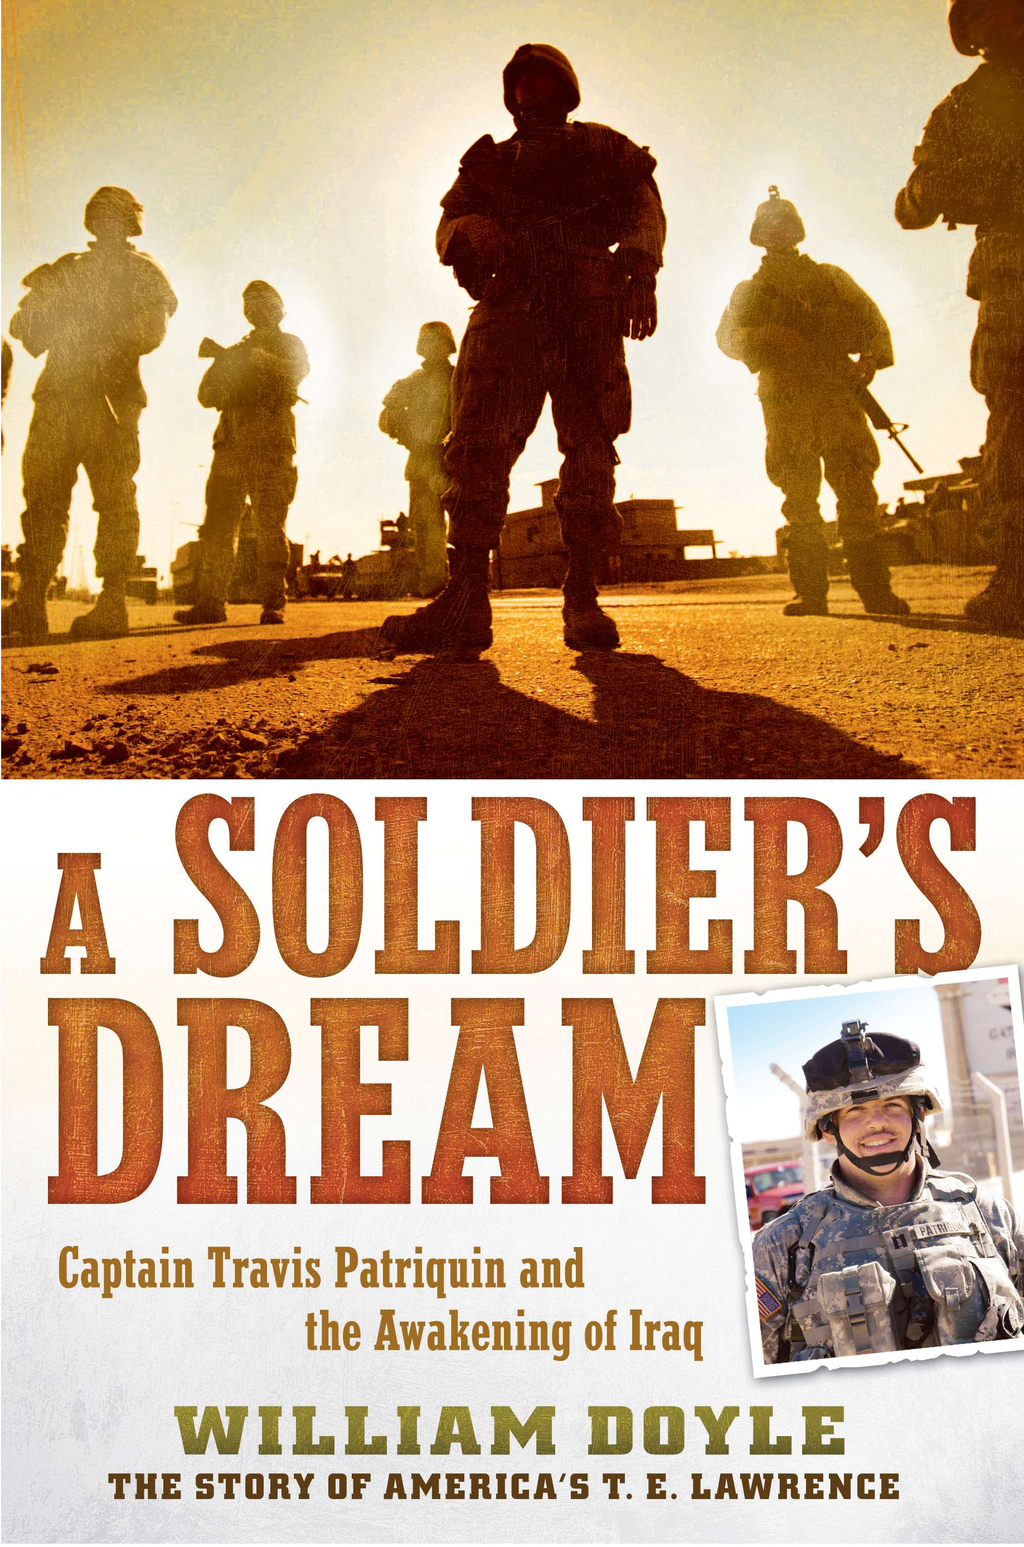 A Soldier's Dream: Captain Travis Patriquin and the Awakening of Iraq By: William Doyle